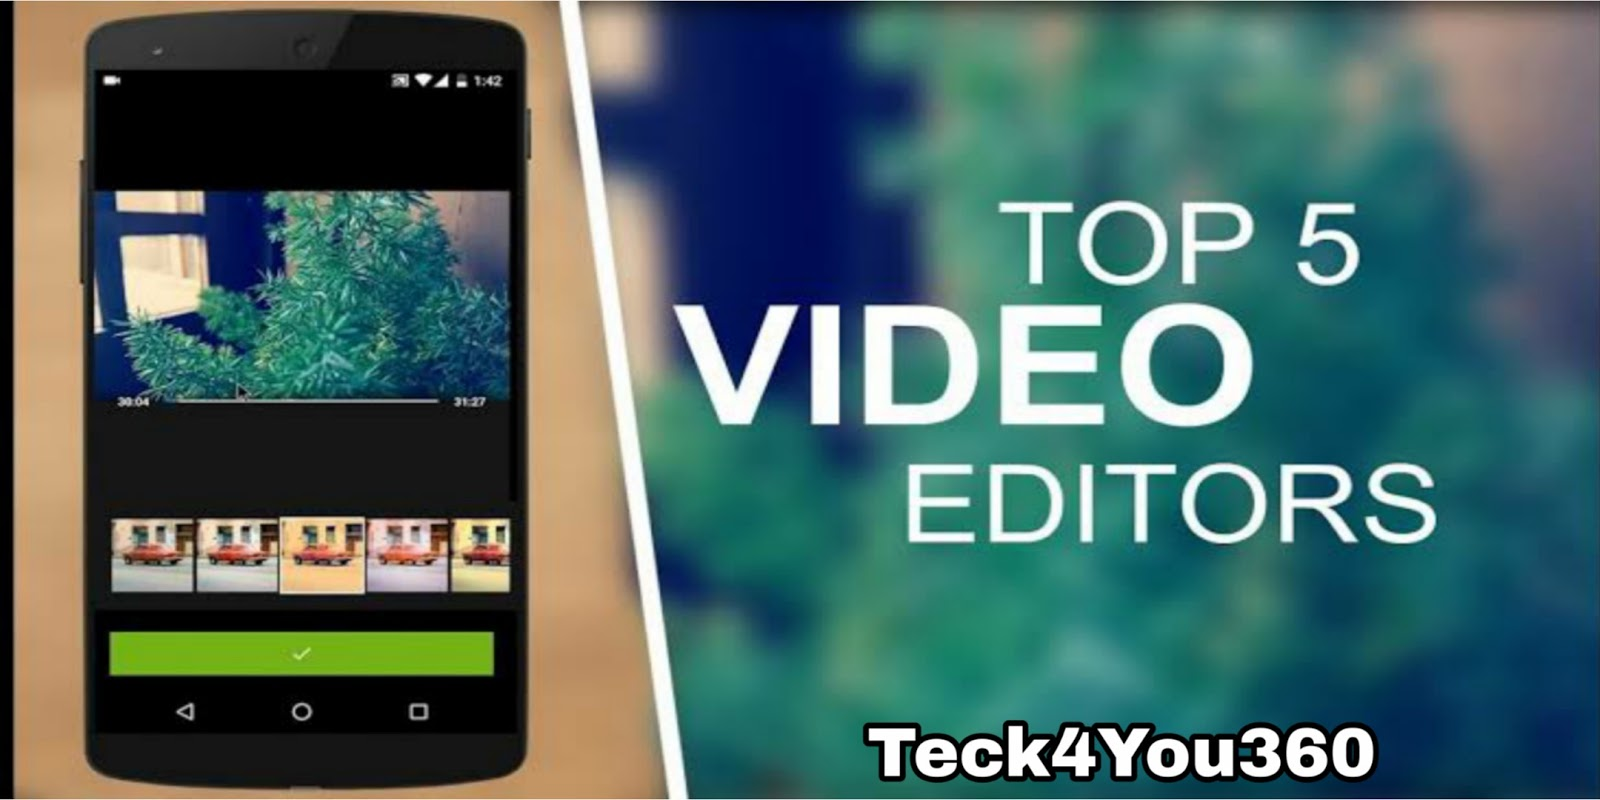 5 Best Free Video Editing App For Android in 2020 - Teck4You360